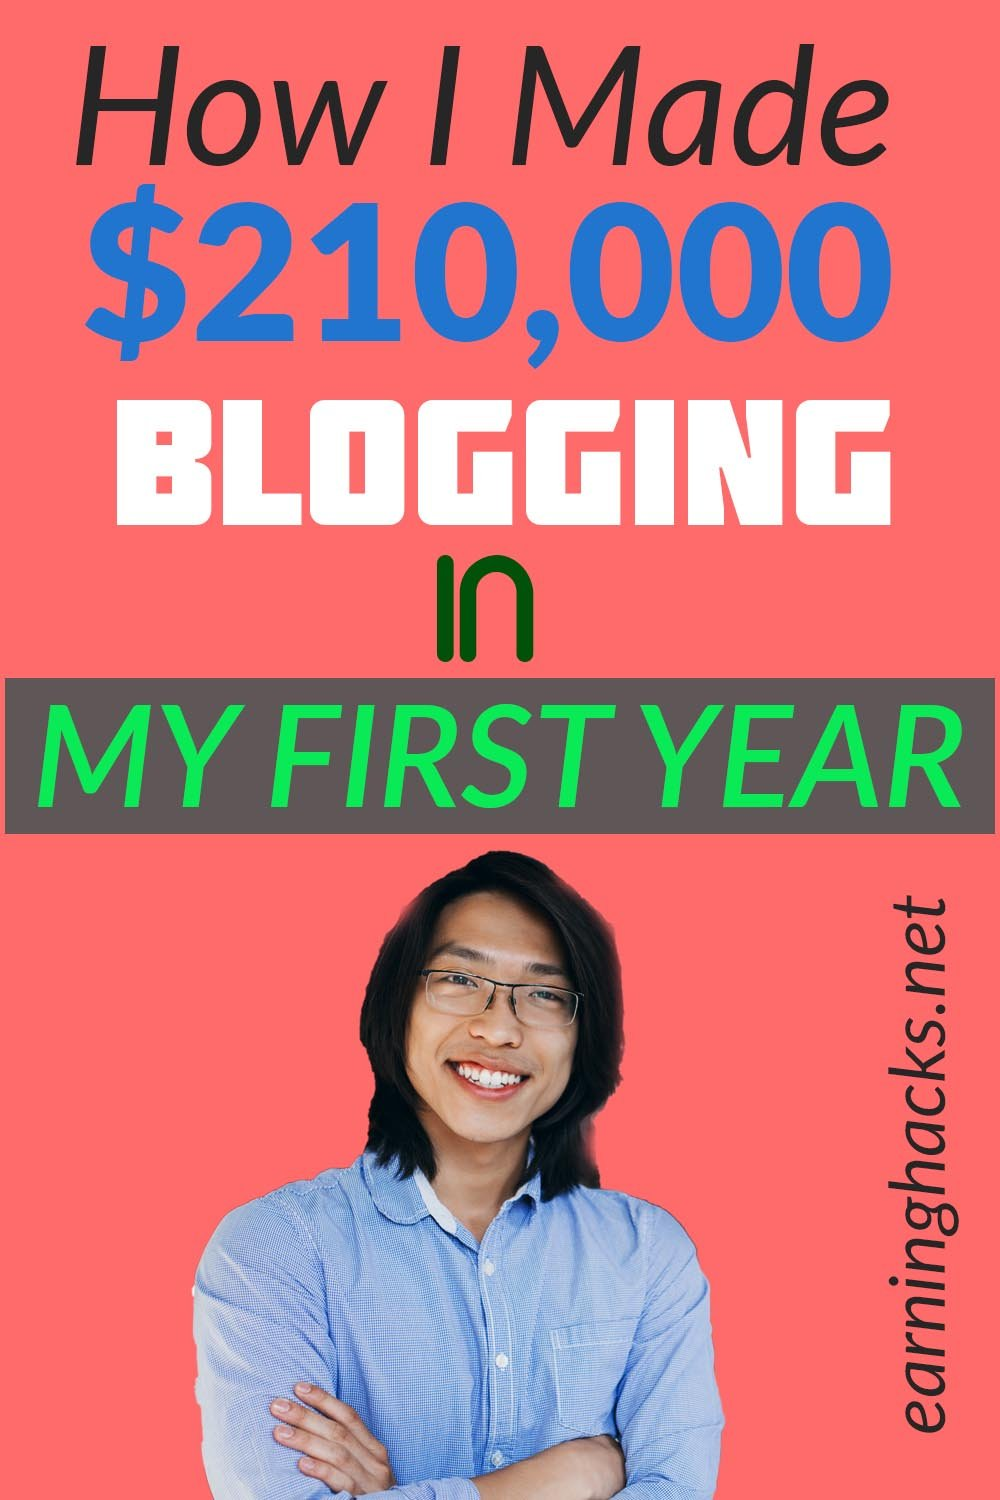 How I Made $210,000 Blogging In My First Year